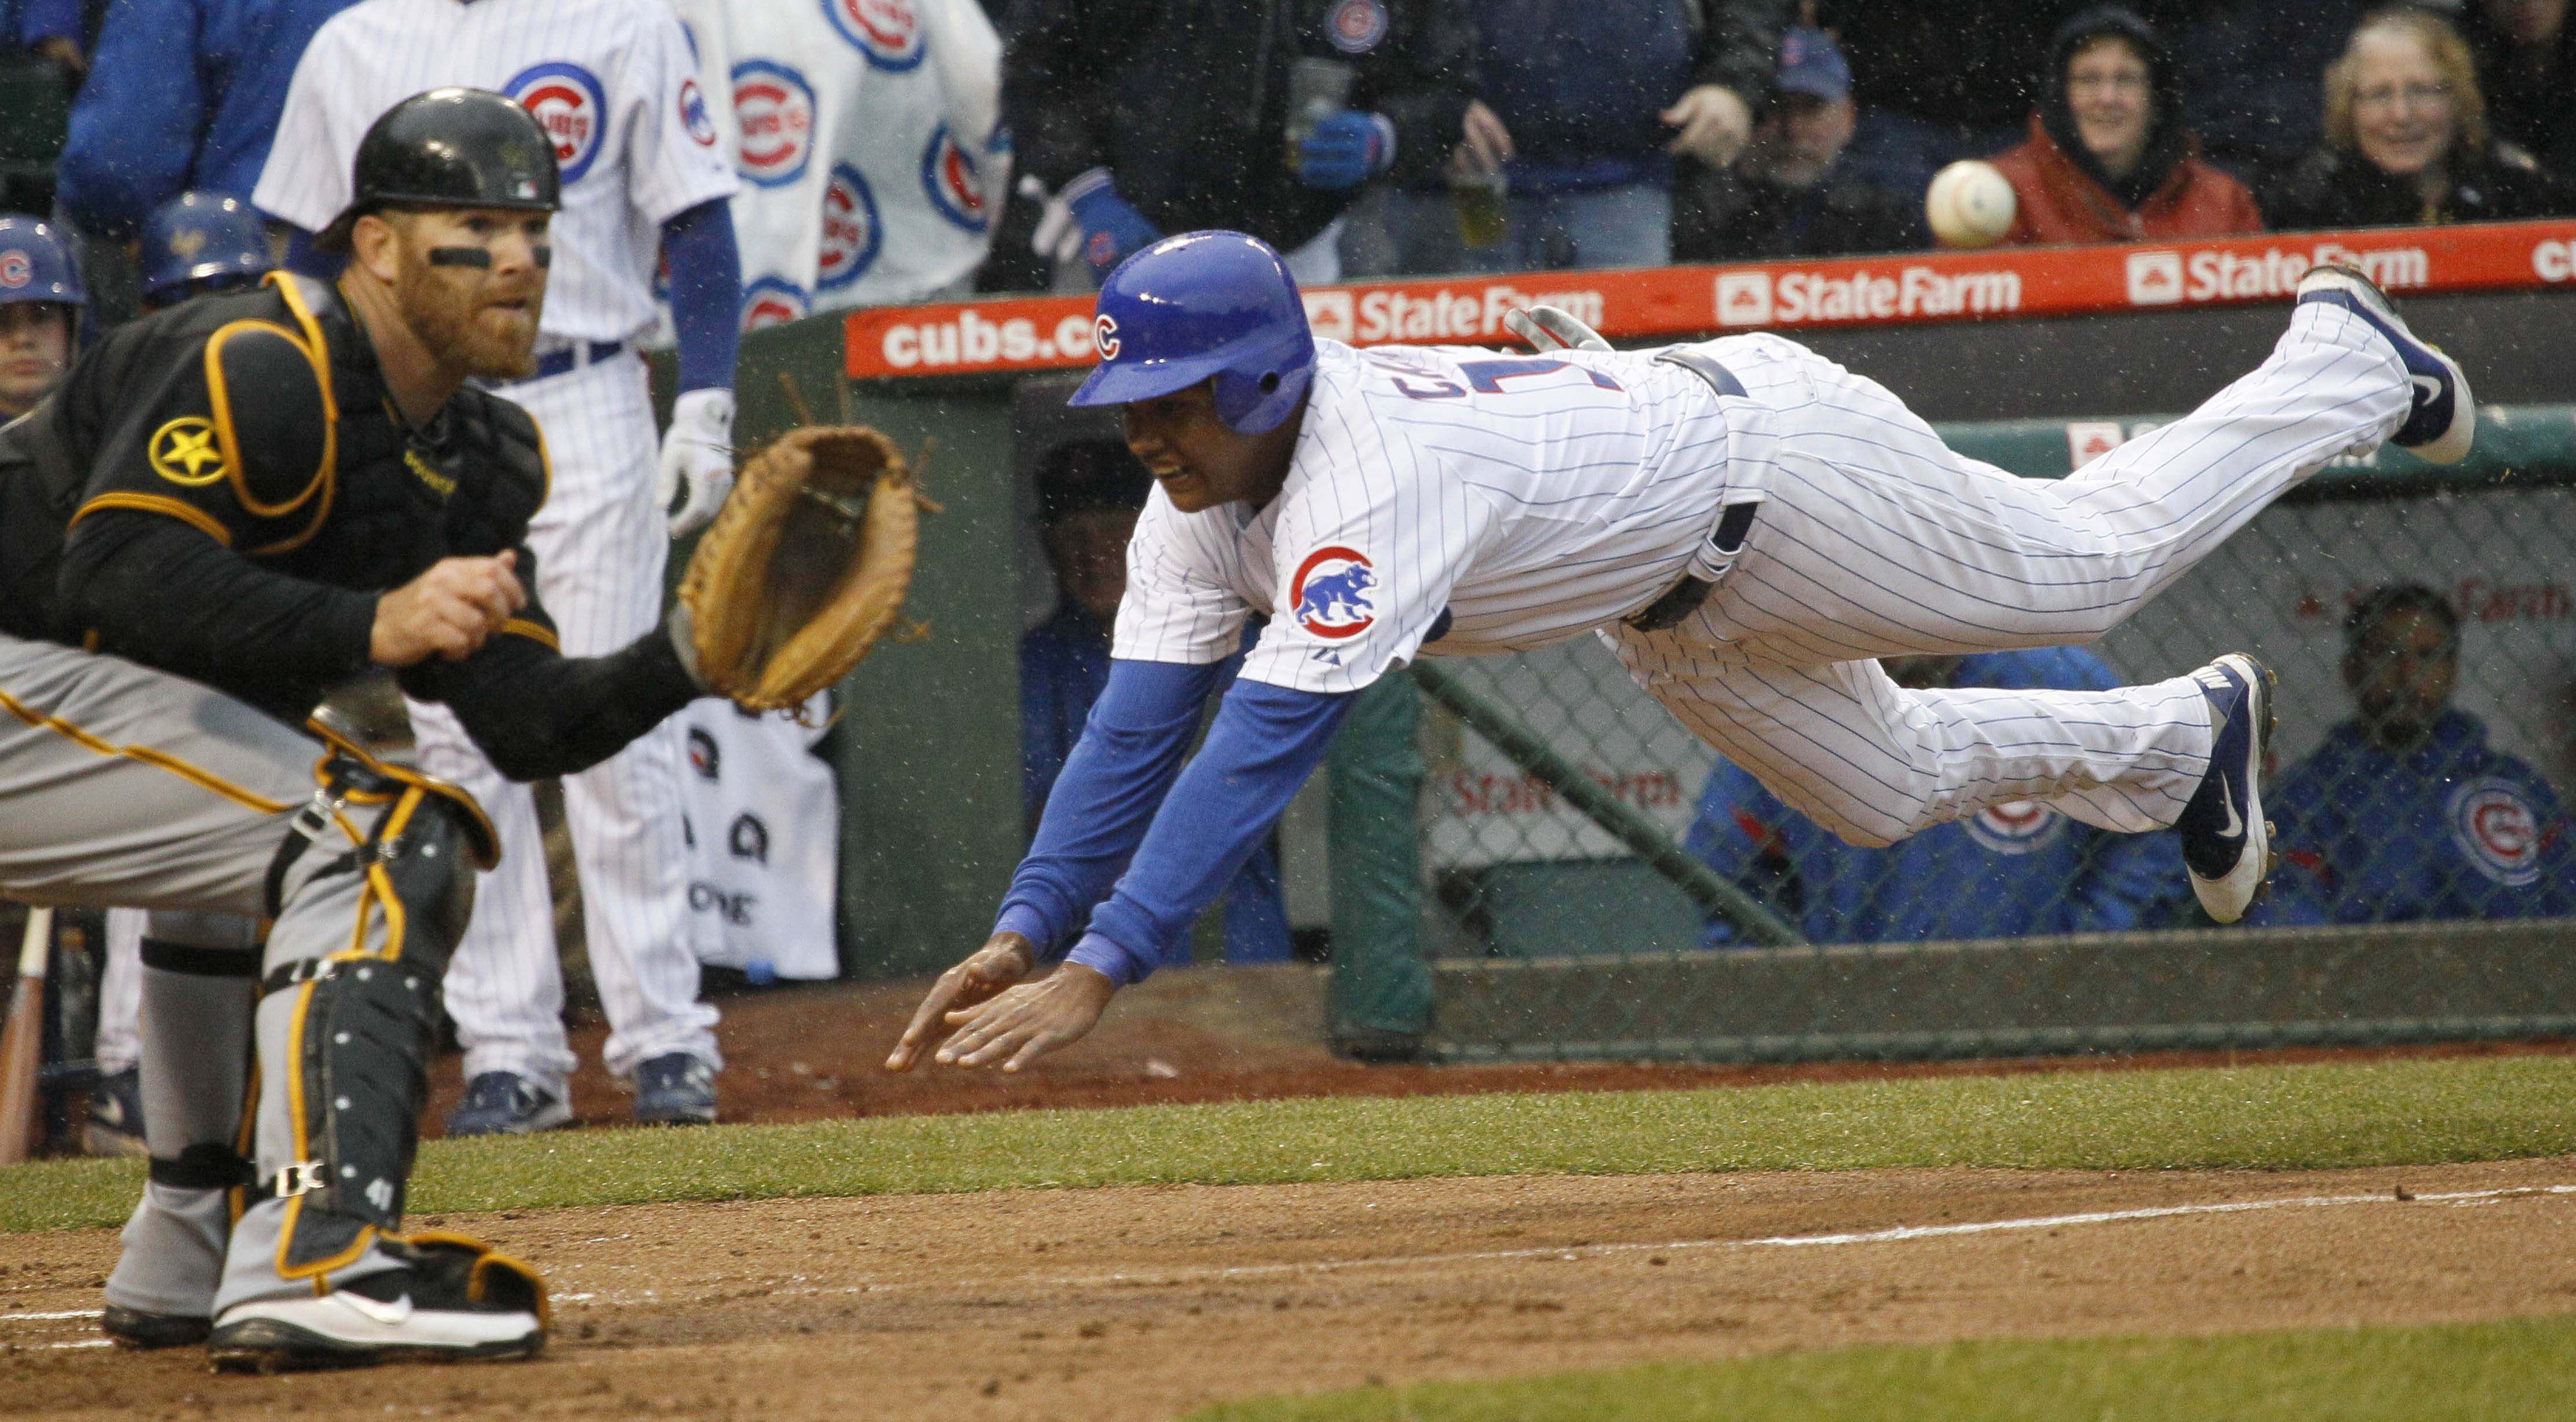 Cubs shortstop Starlin Castro, right, dives into home plates past Pittsburgh Pirates catcher Ryan Doumit, scoring off a throwing error by Pedro Alvarez, during the first inning Friday.